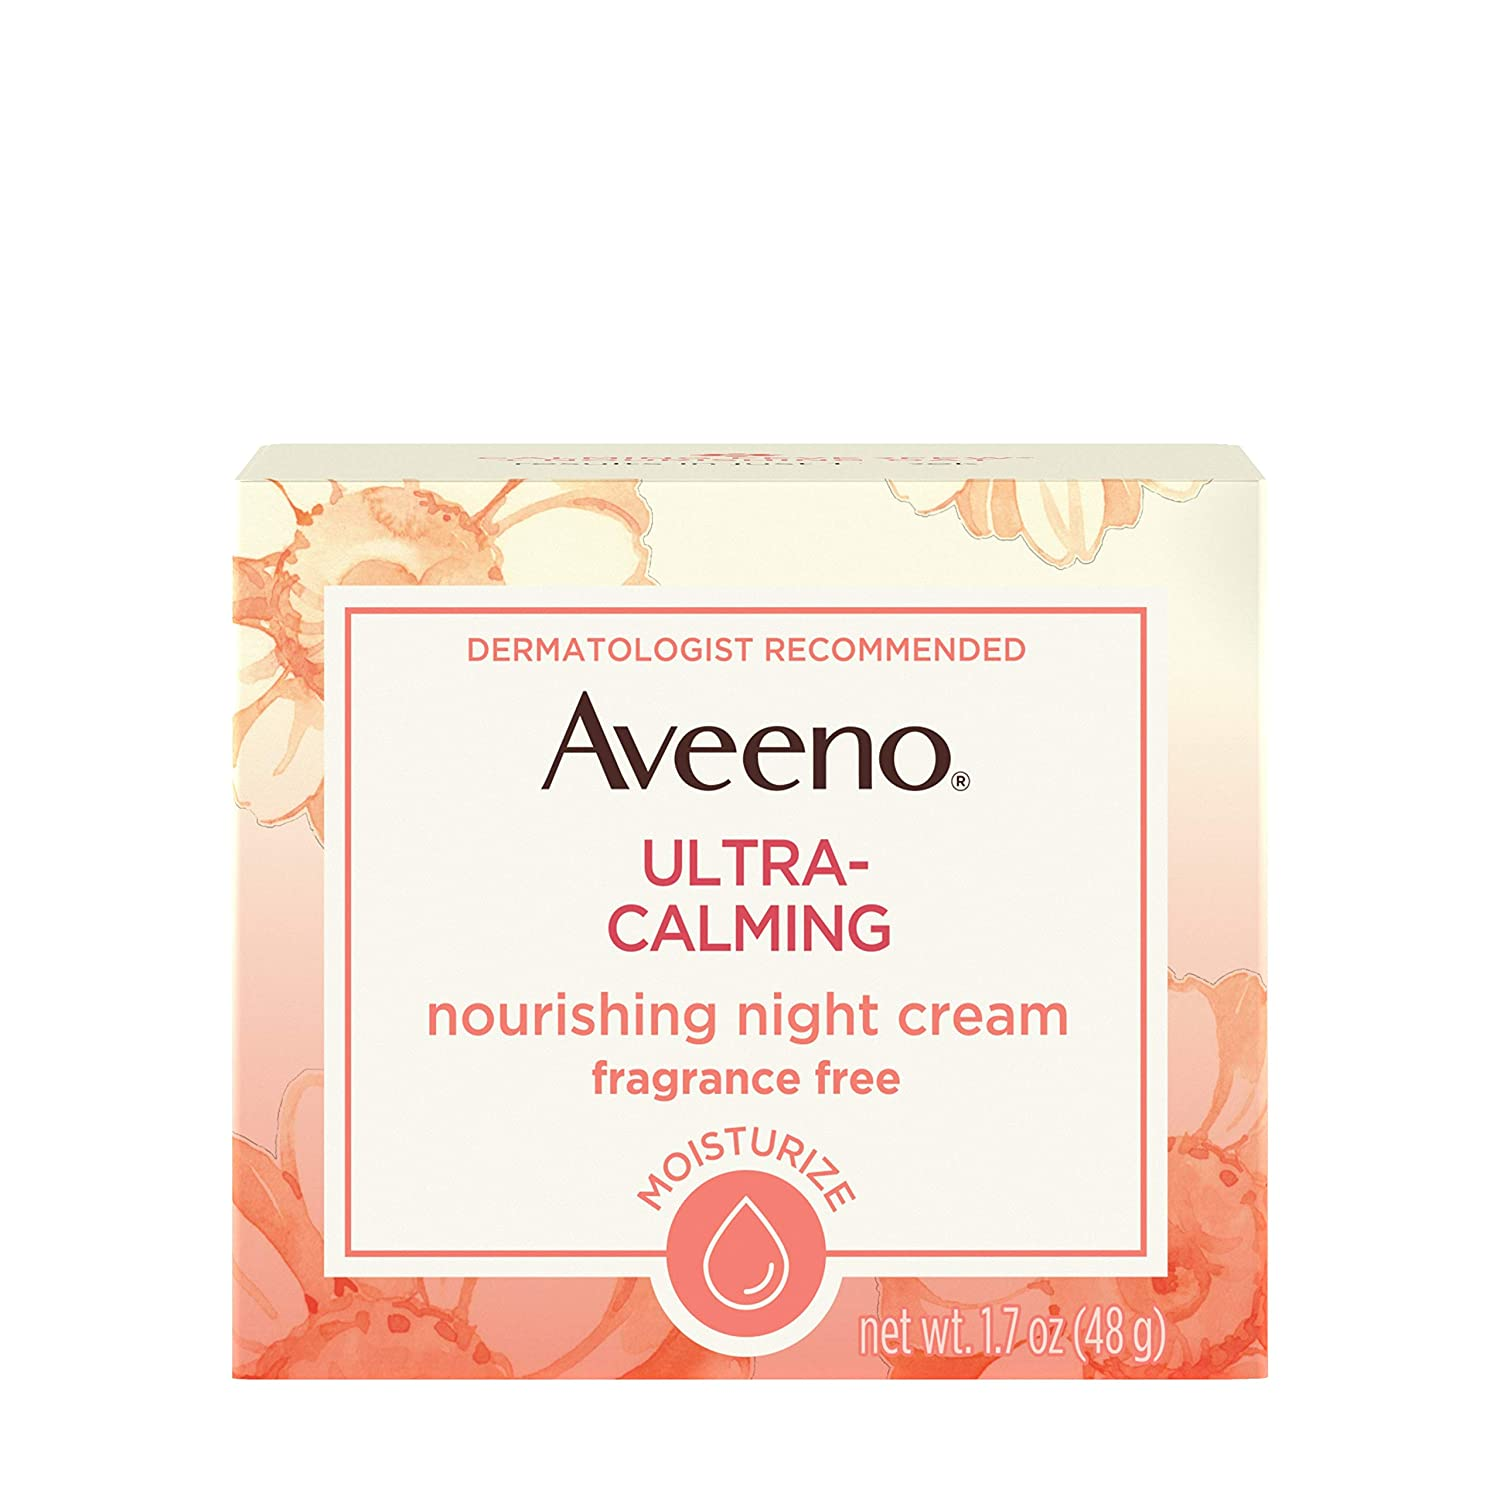 Aveeno Ultra-Calming Nourishing Night Cream for Sensitive Skin with Calming Feverfew & Nourishing Oat, Non-Comedogenic, Oil-Free & Hypoallergenic, 1.7 oz